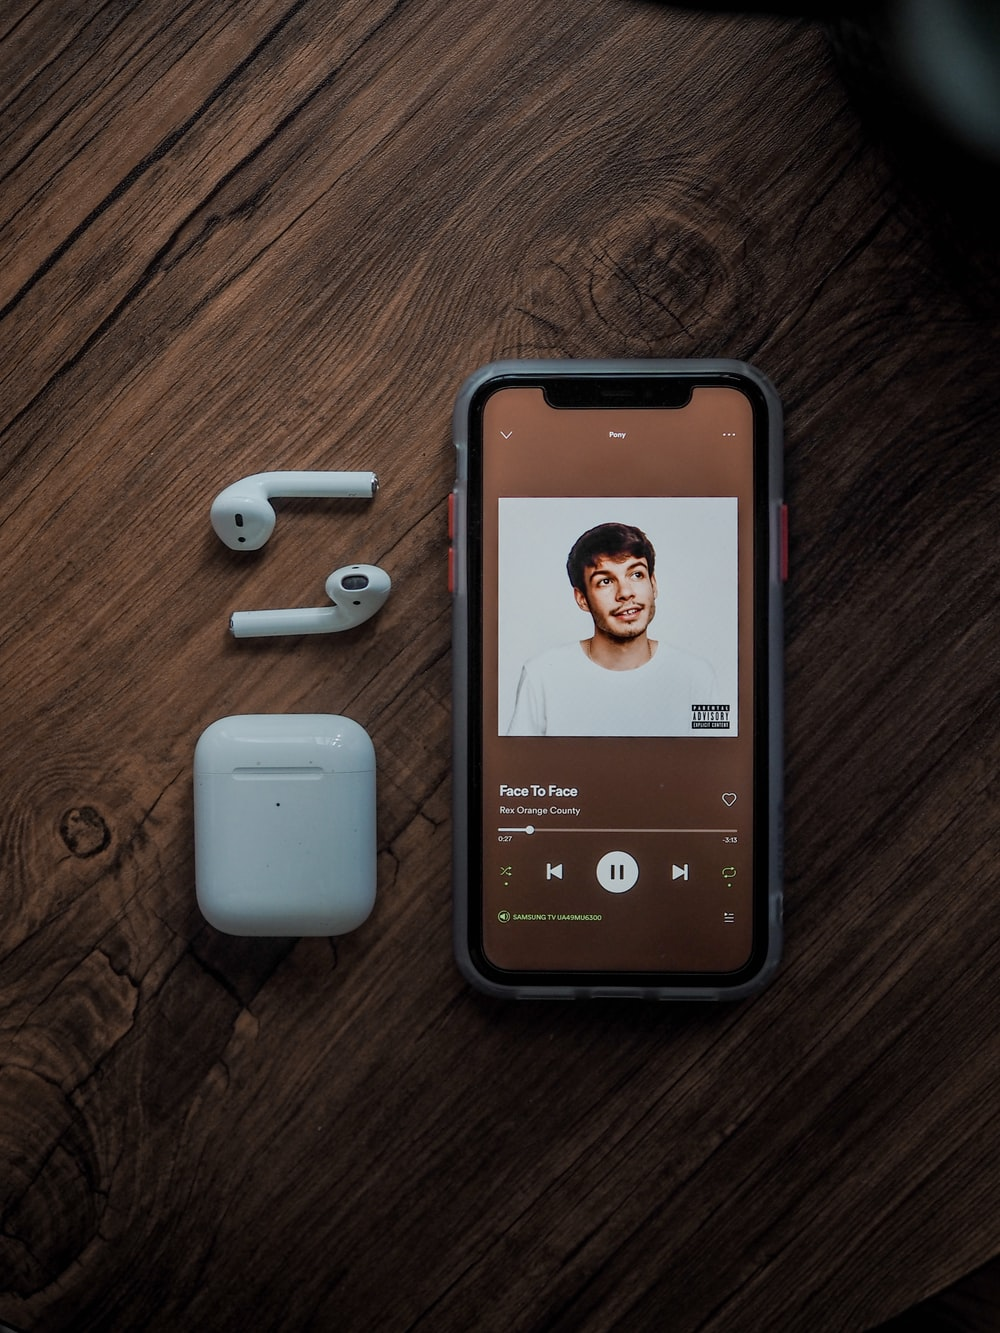 turned on smartphone beside Apple AirPods and case